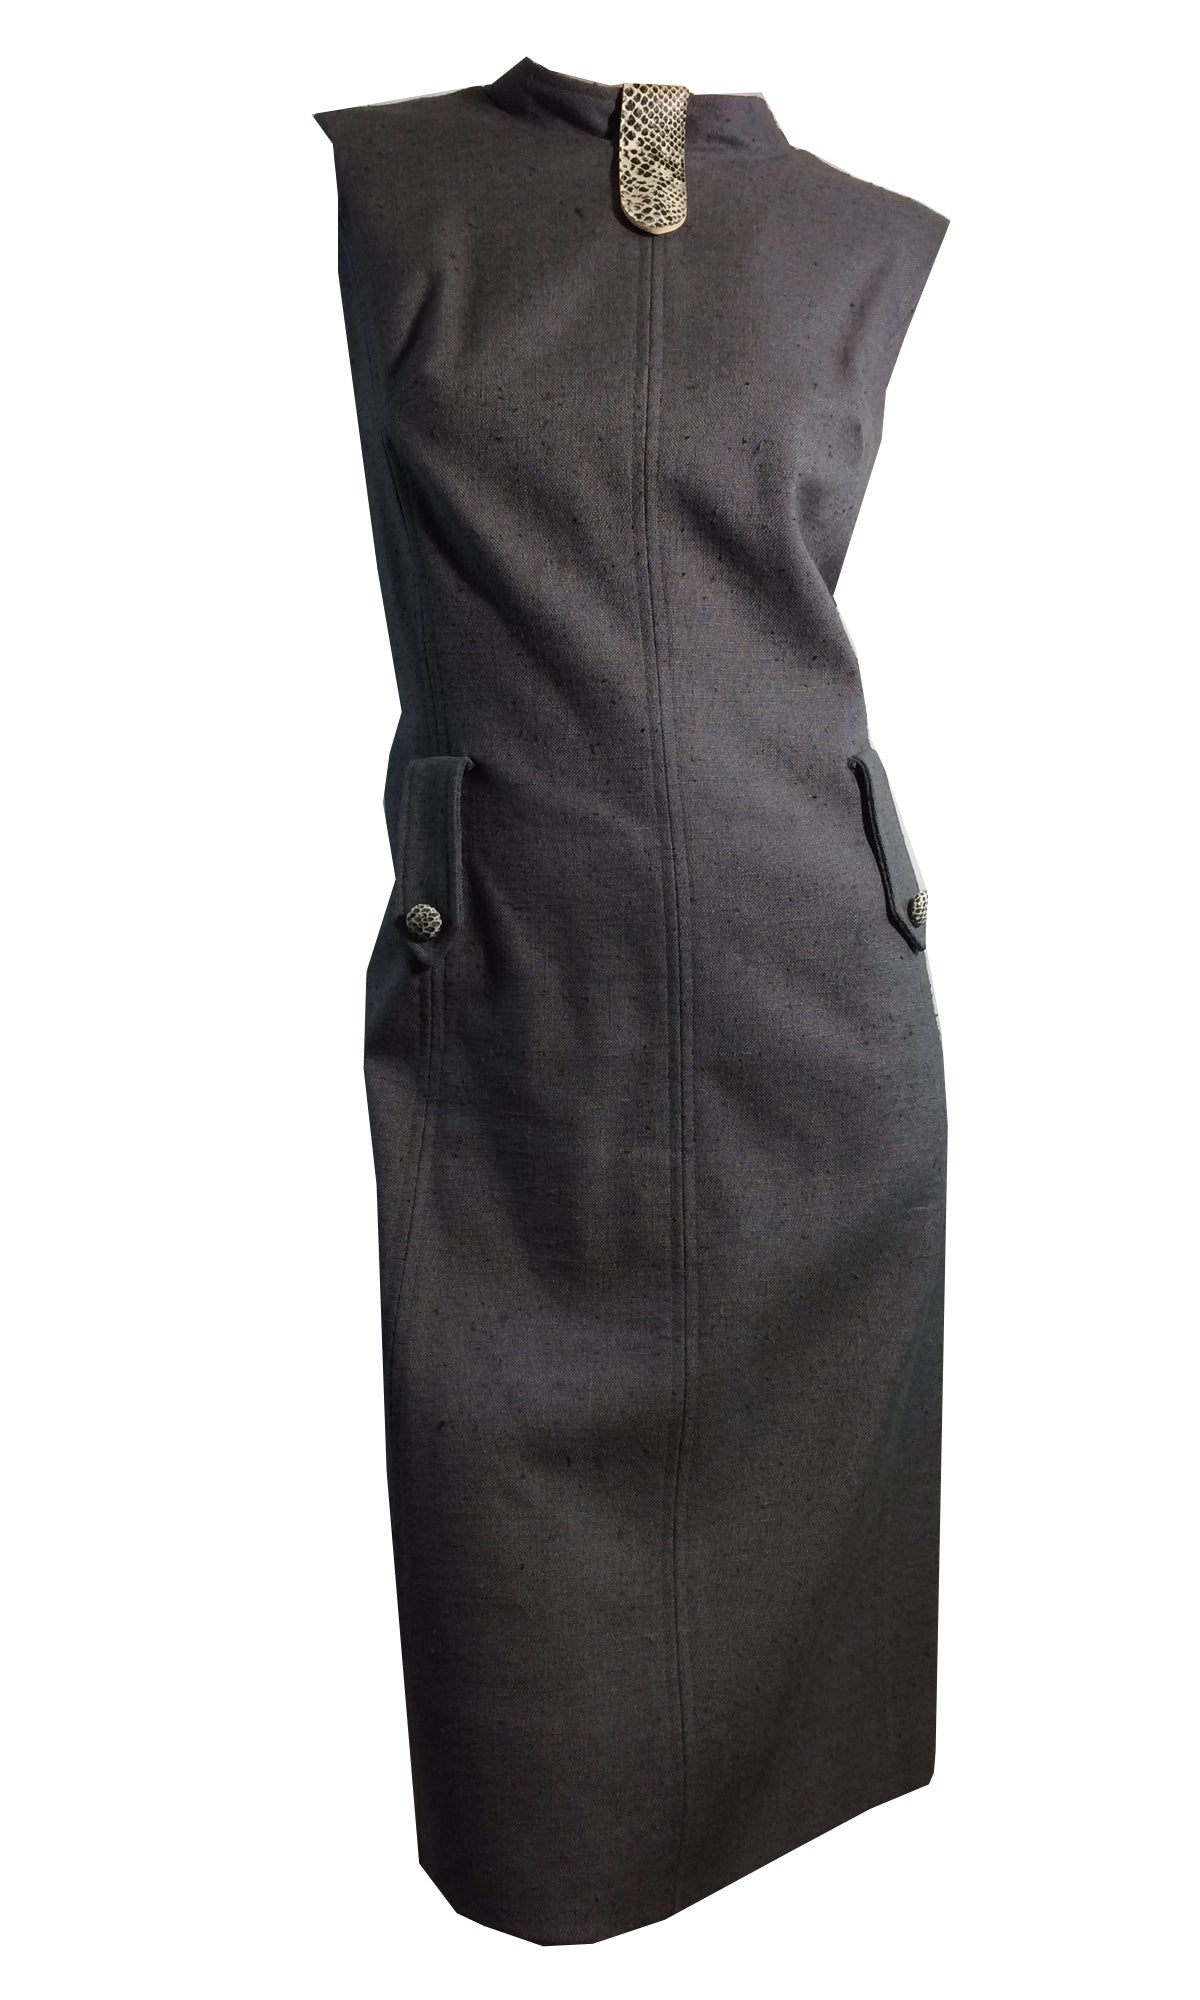 Charcoal Grey Linen Weave Rayon Sheath Dress w/ Faux Snakeskin Accents circa 1960s